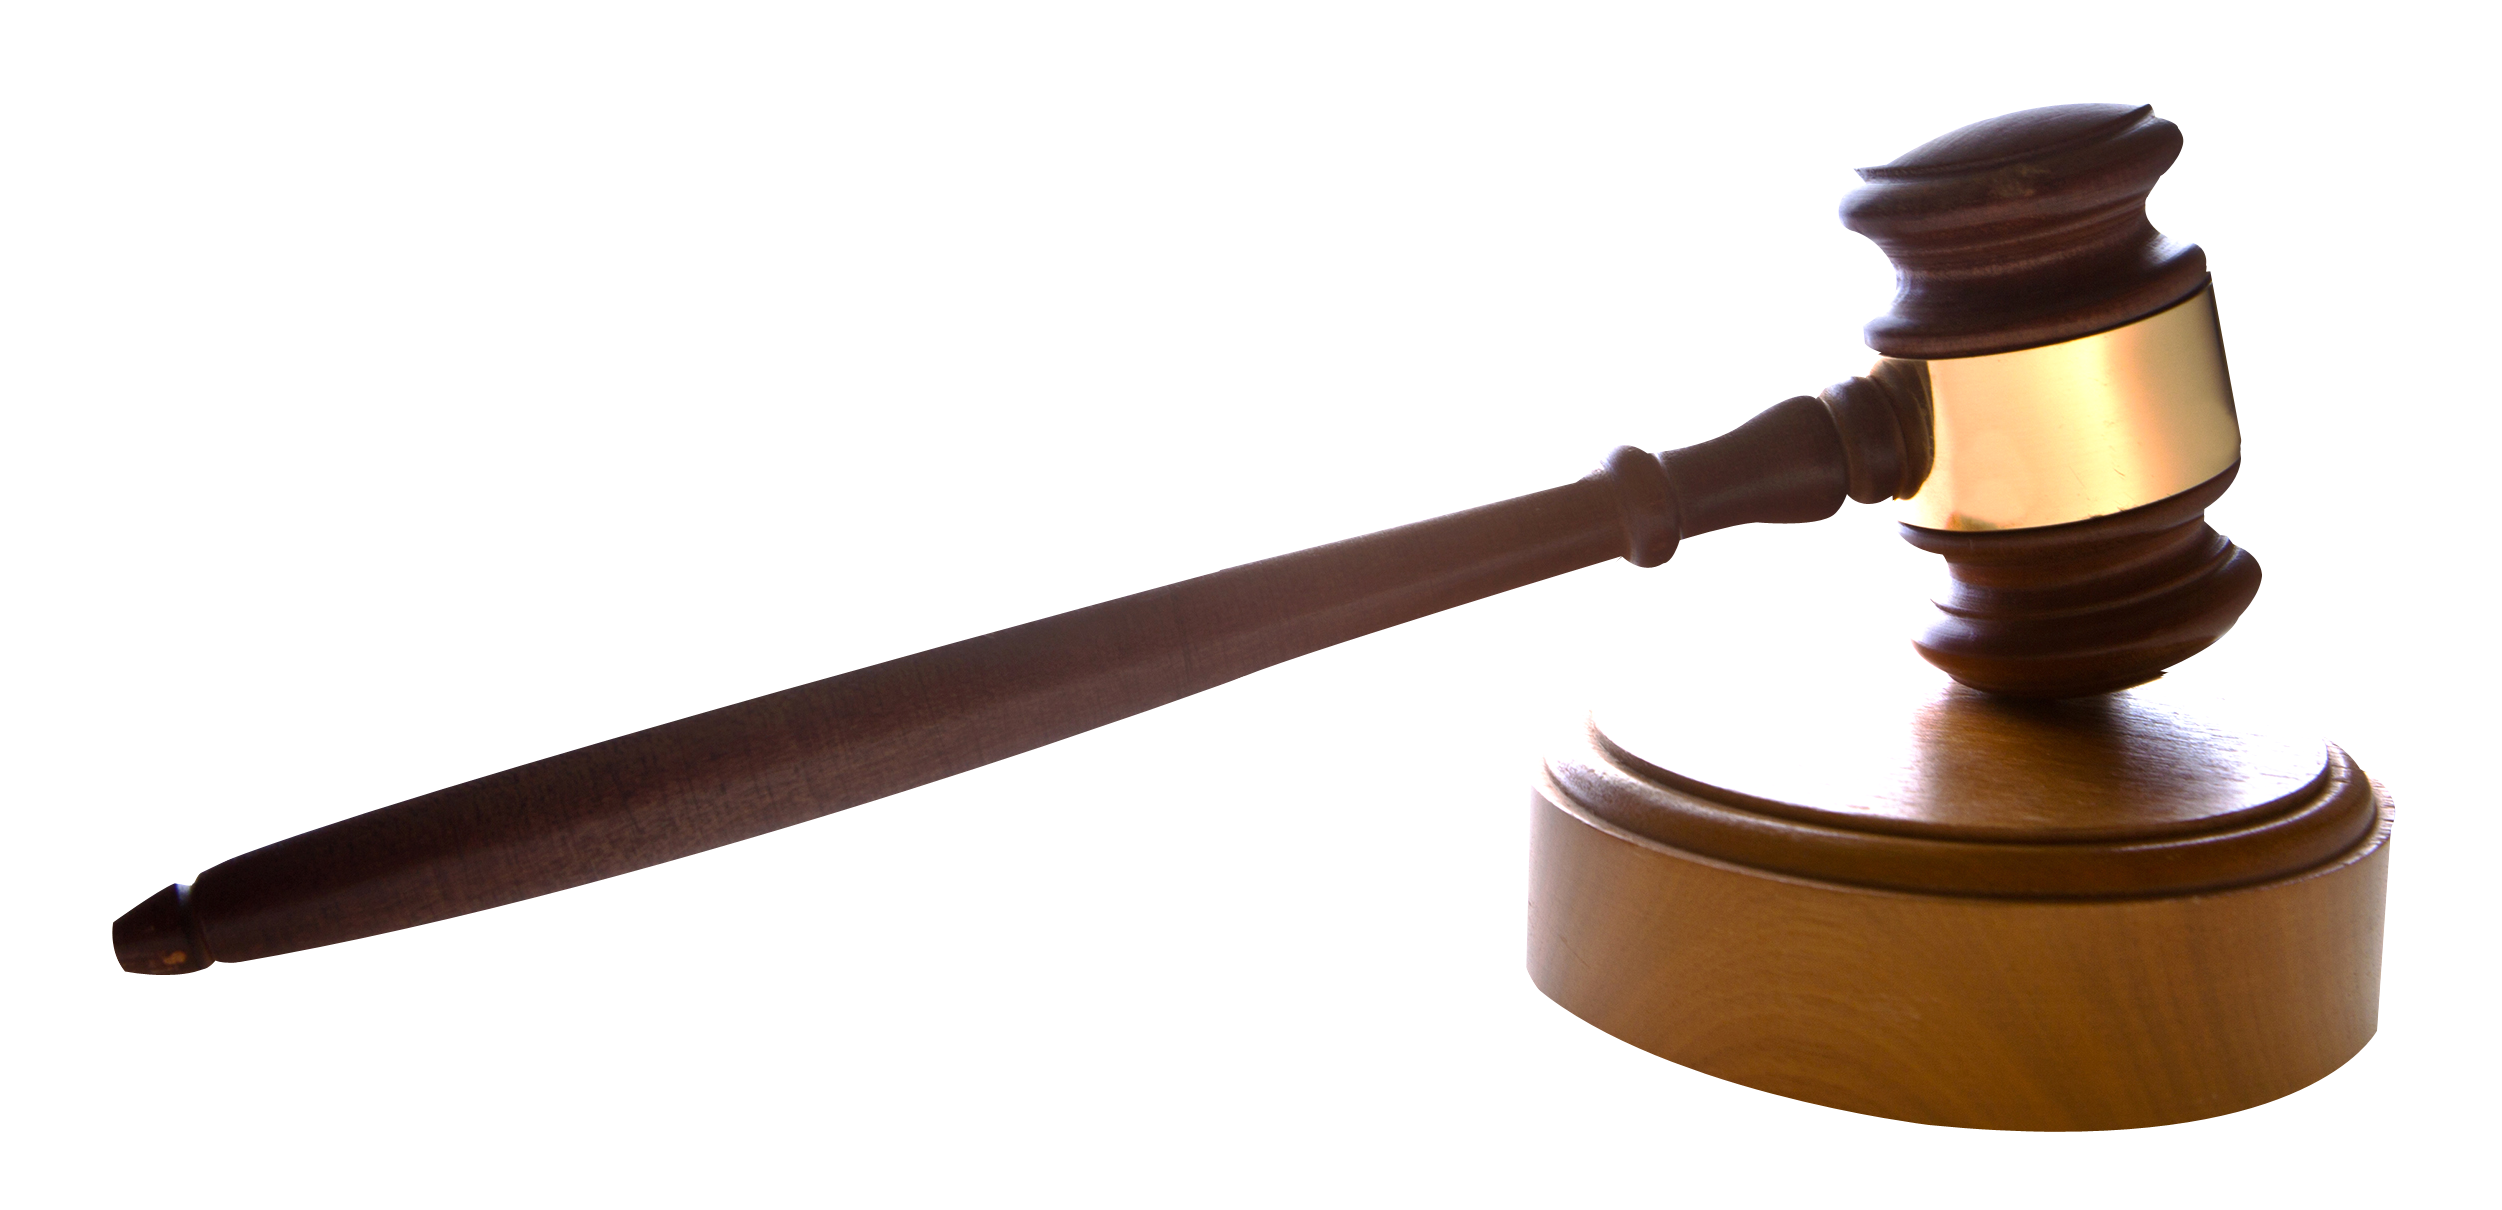 Gavel clipart no background clipart black and white download Gavel PNG Transparent Transparent Gavel Transparent.PNG Images ... clipart black and white download